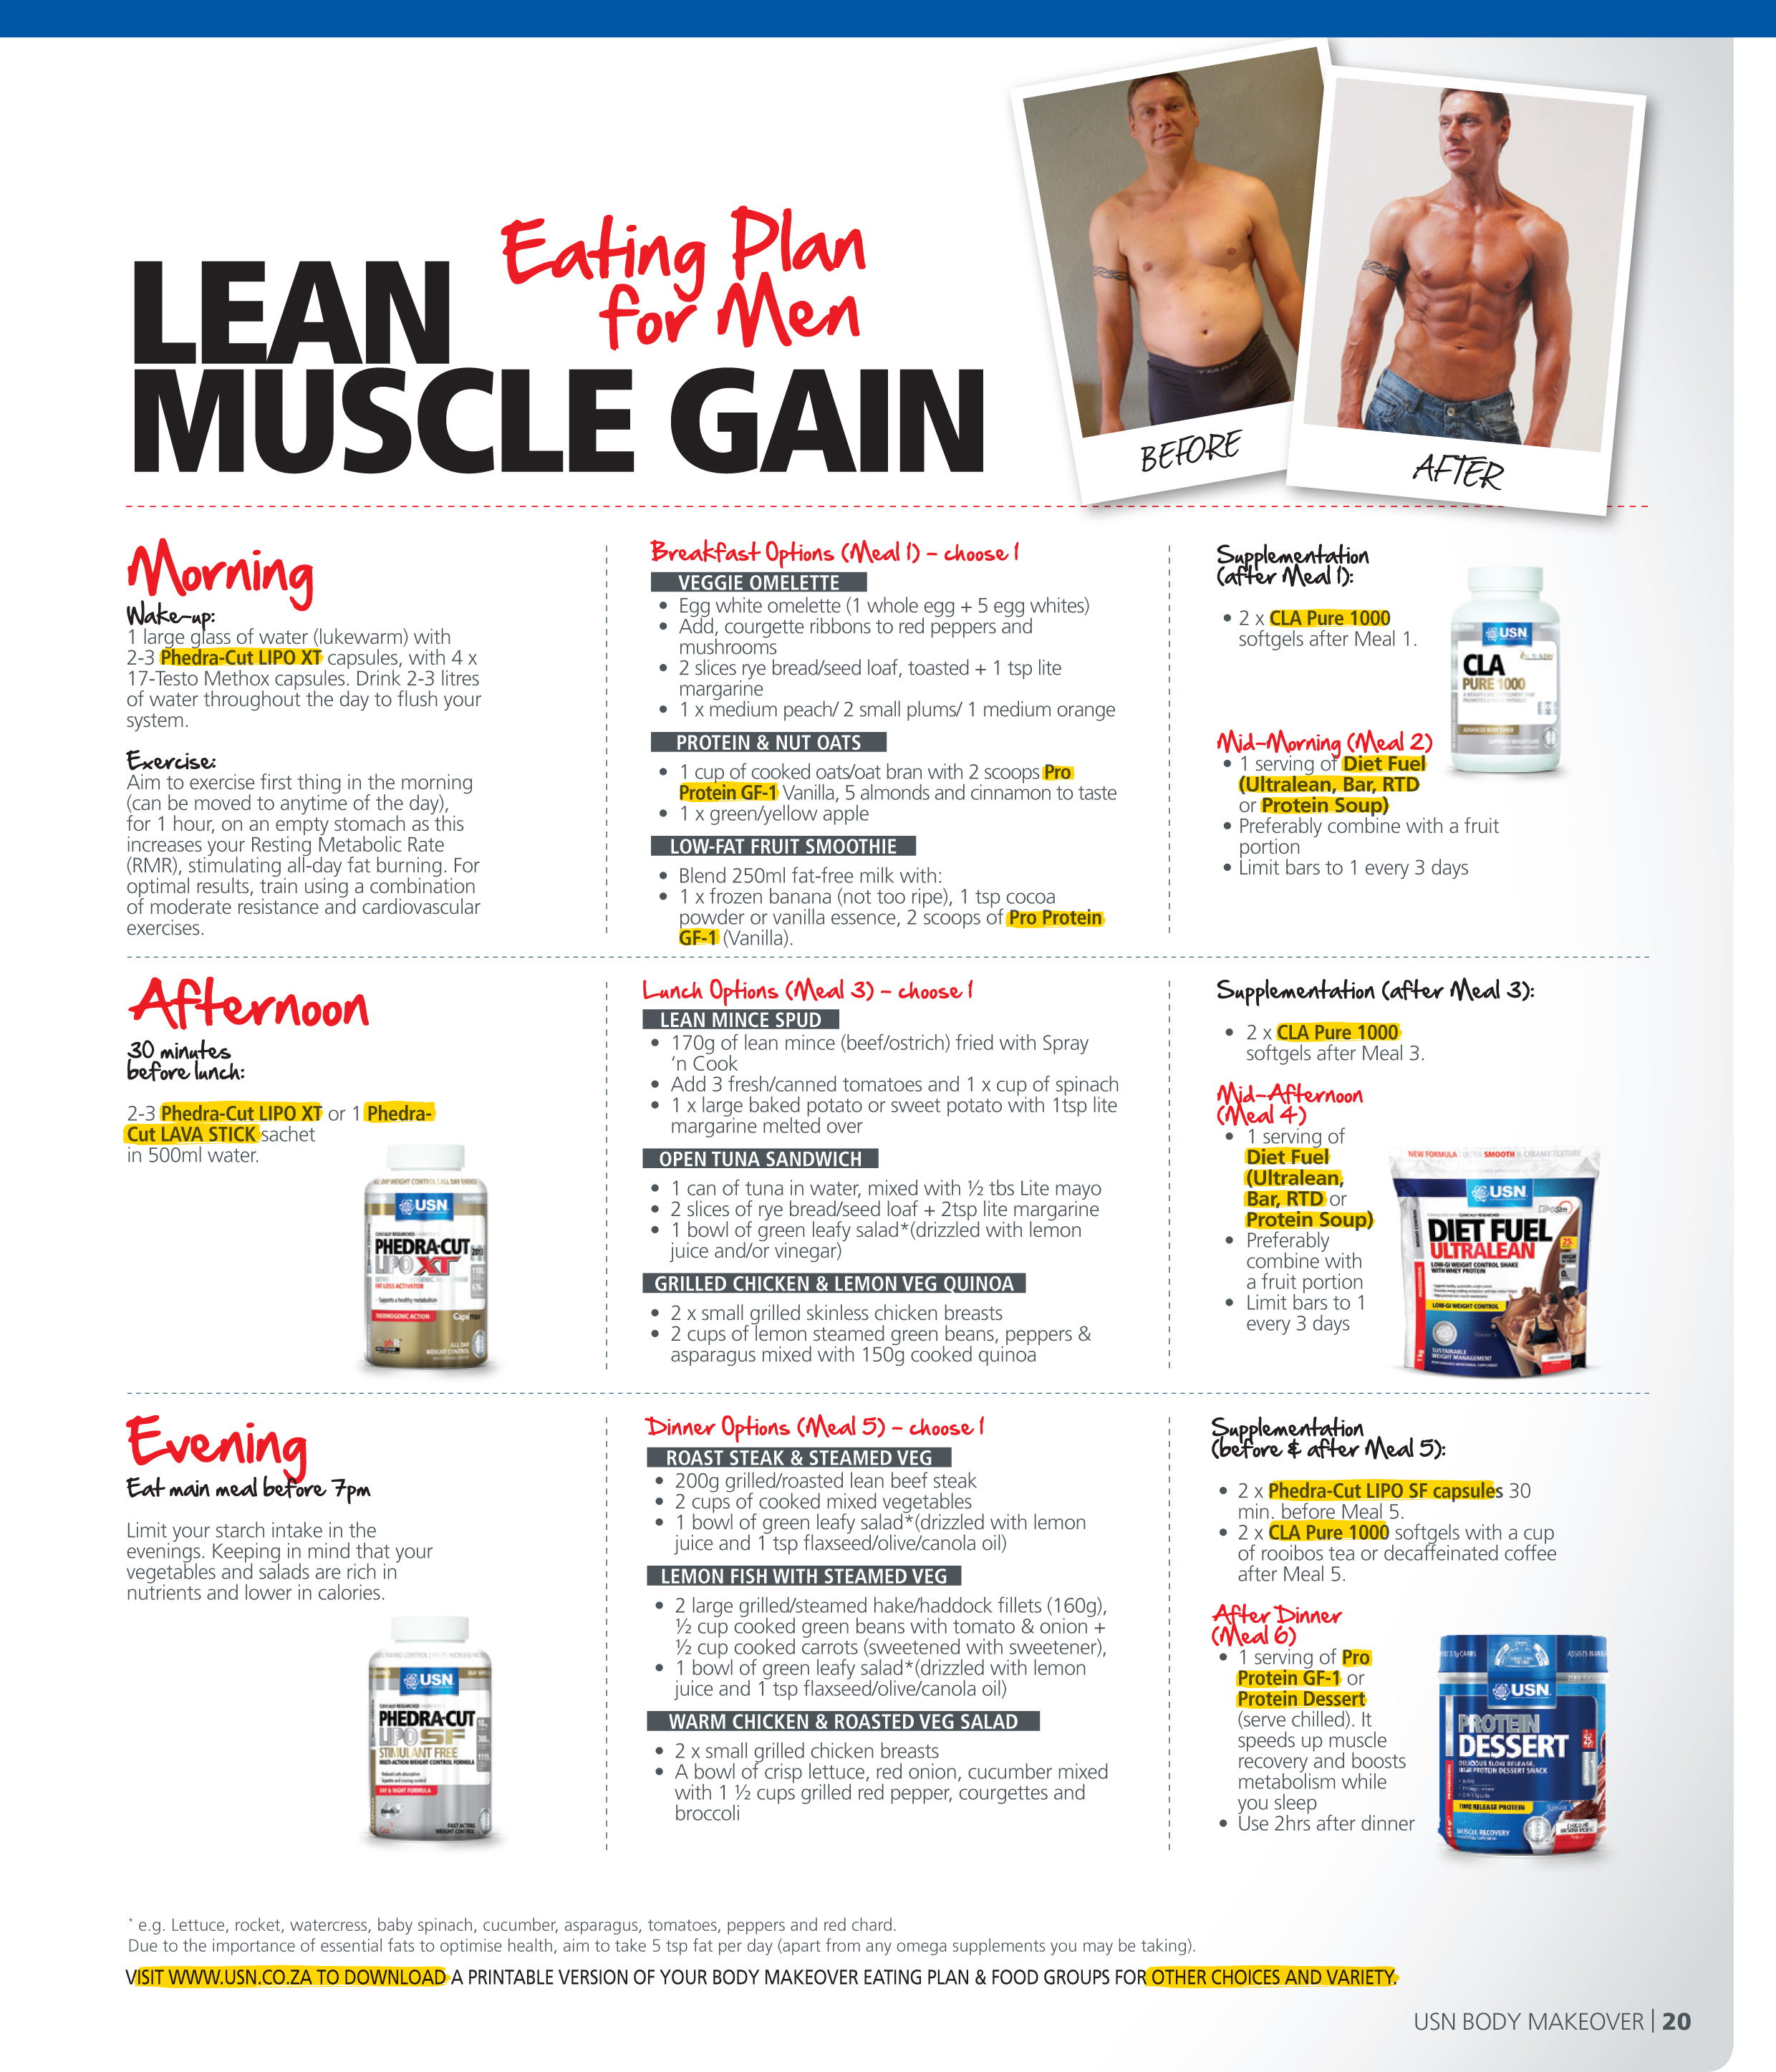 Eating diet plan to gain muscle